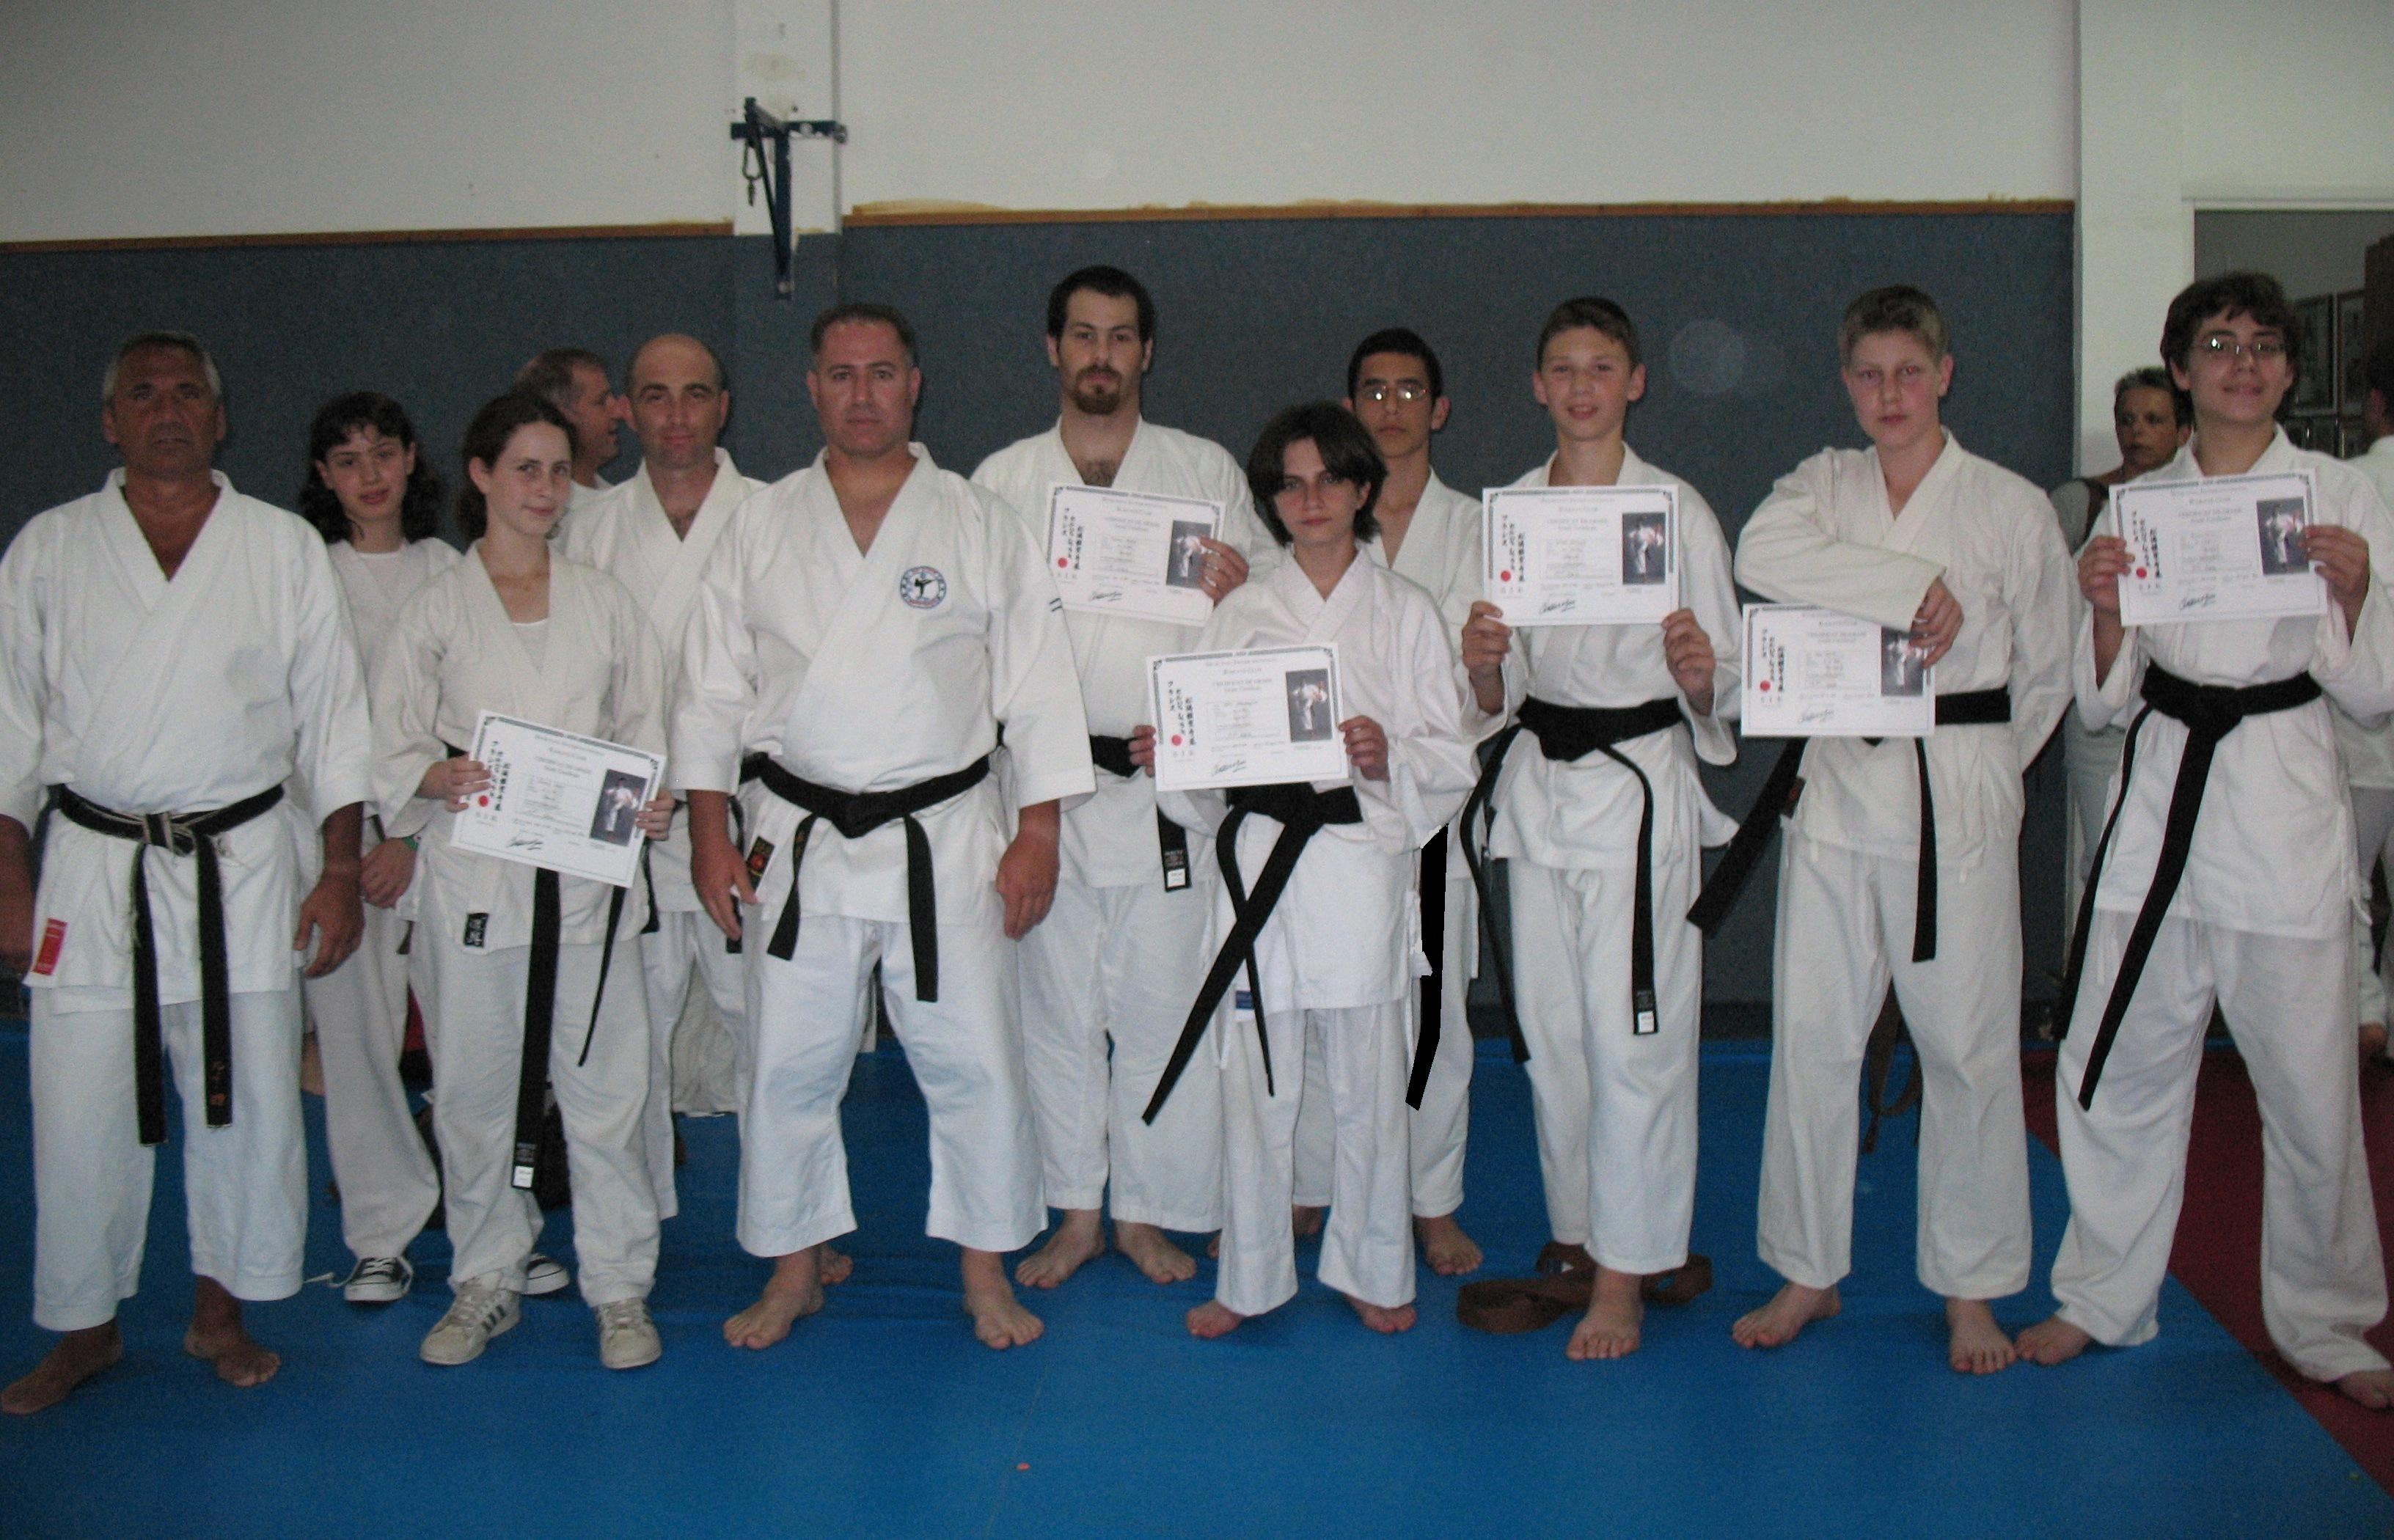 Martial Arts Group Certificate - Teen Rehab